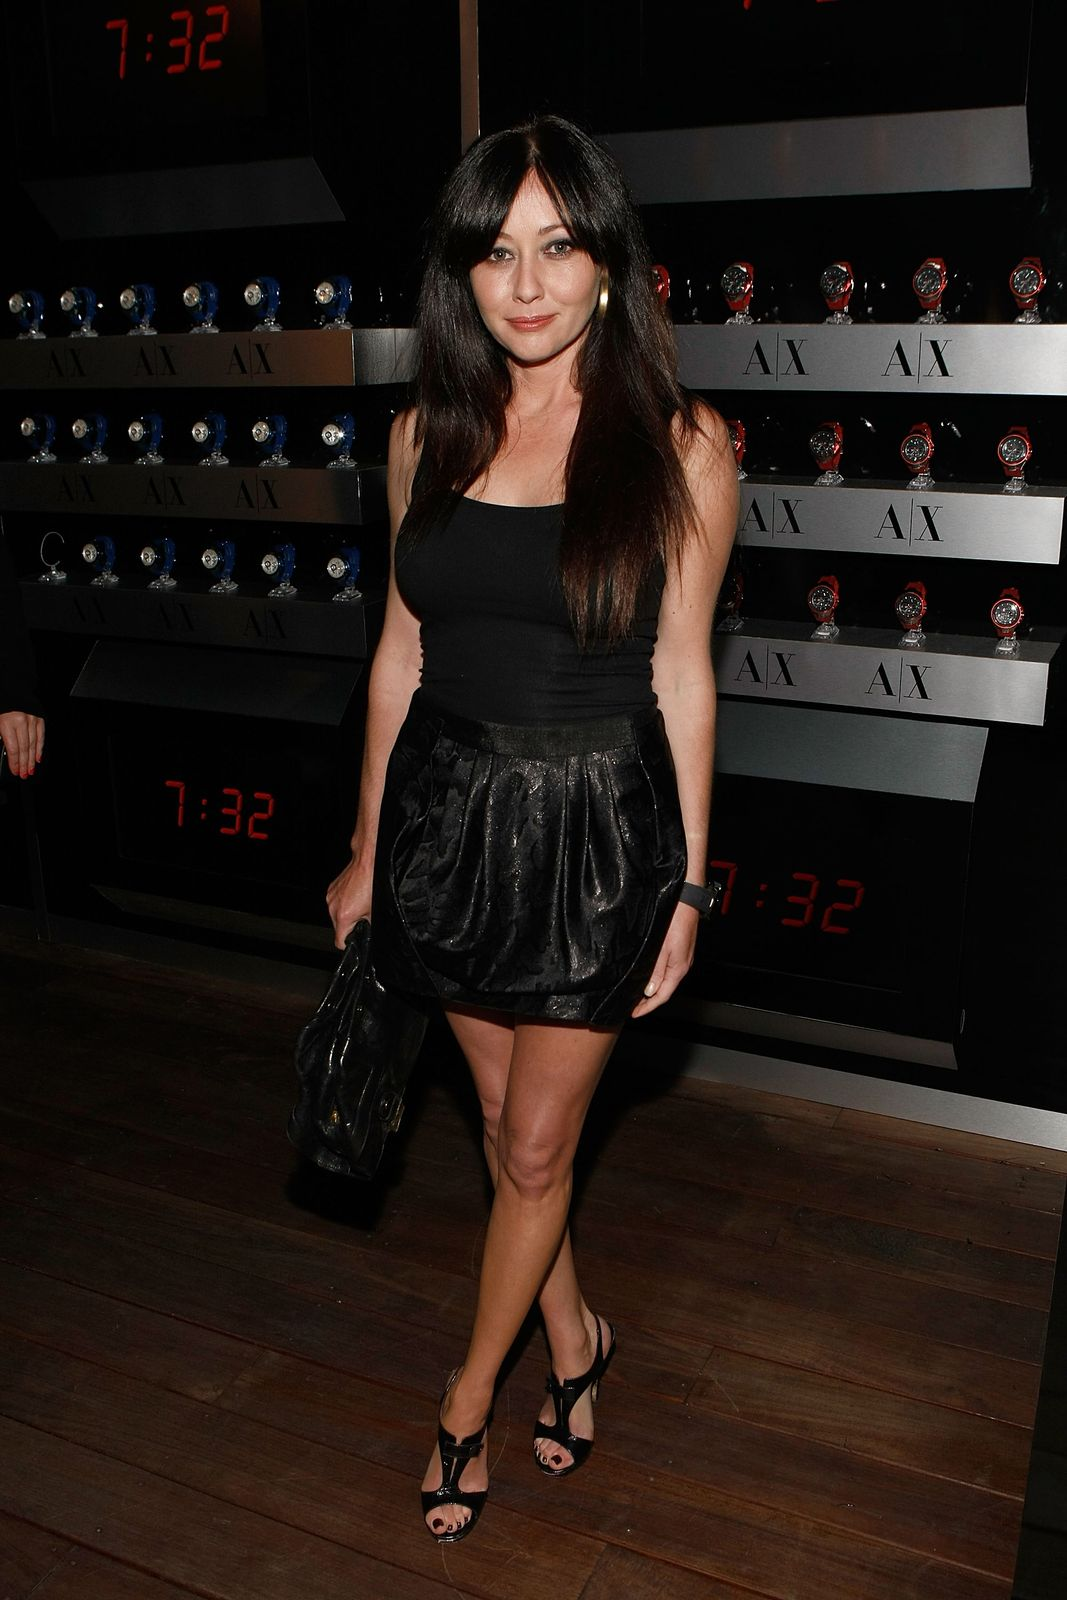 Shannen Doherty at the launch of A/X Watches at the SLS Hotel on April 15, 2009 in Los Angeles, California | Photo: Michael Buckner/Getty Images